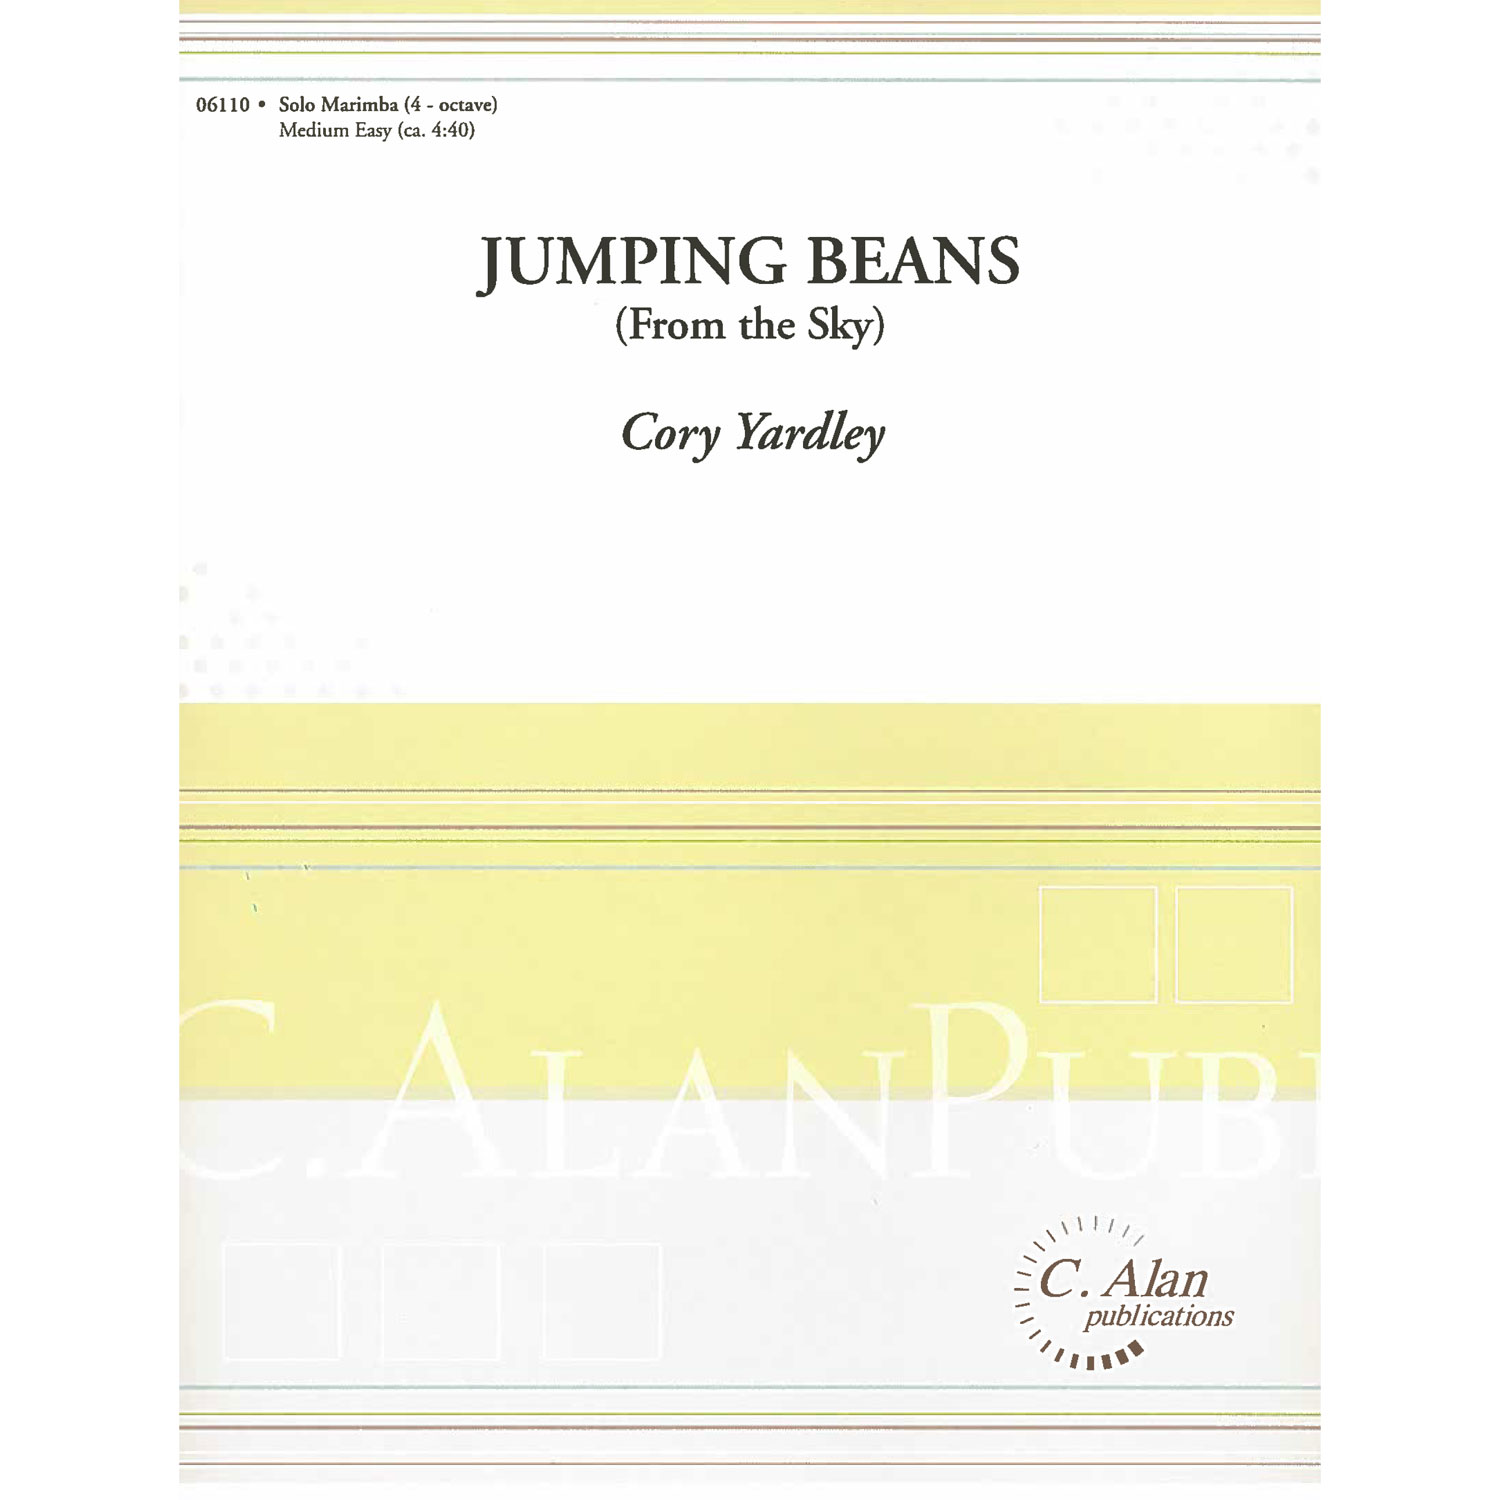 Jumping Beans (From the Sky) by Cory Yardley